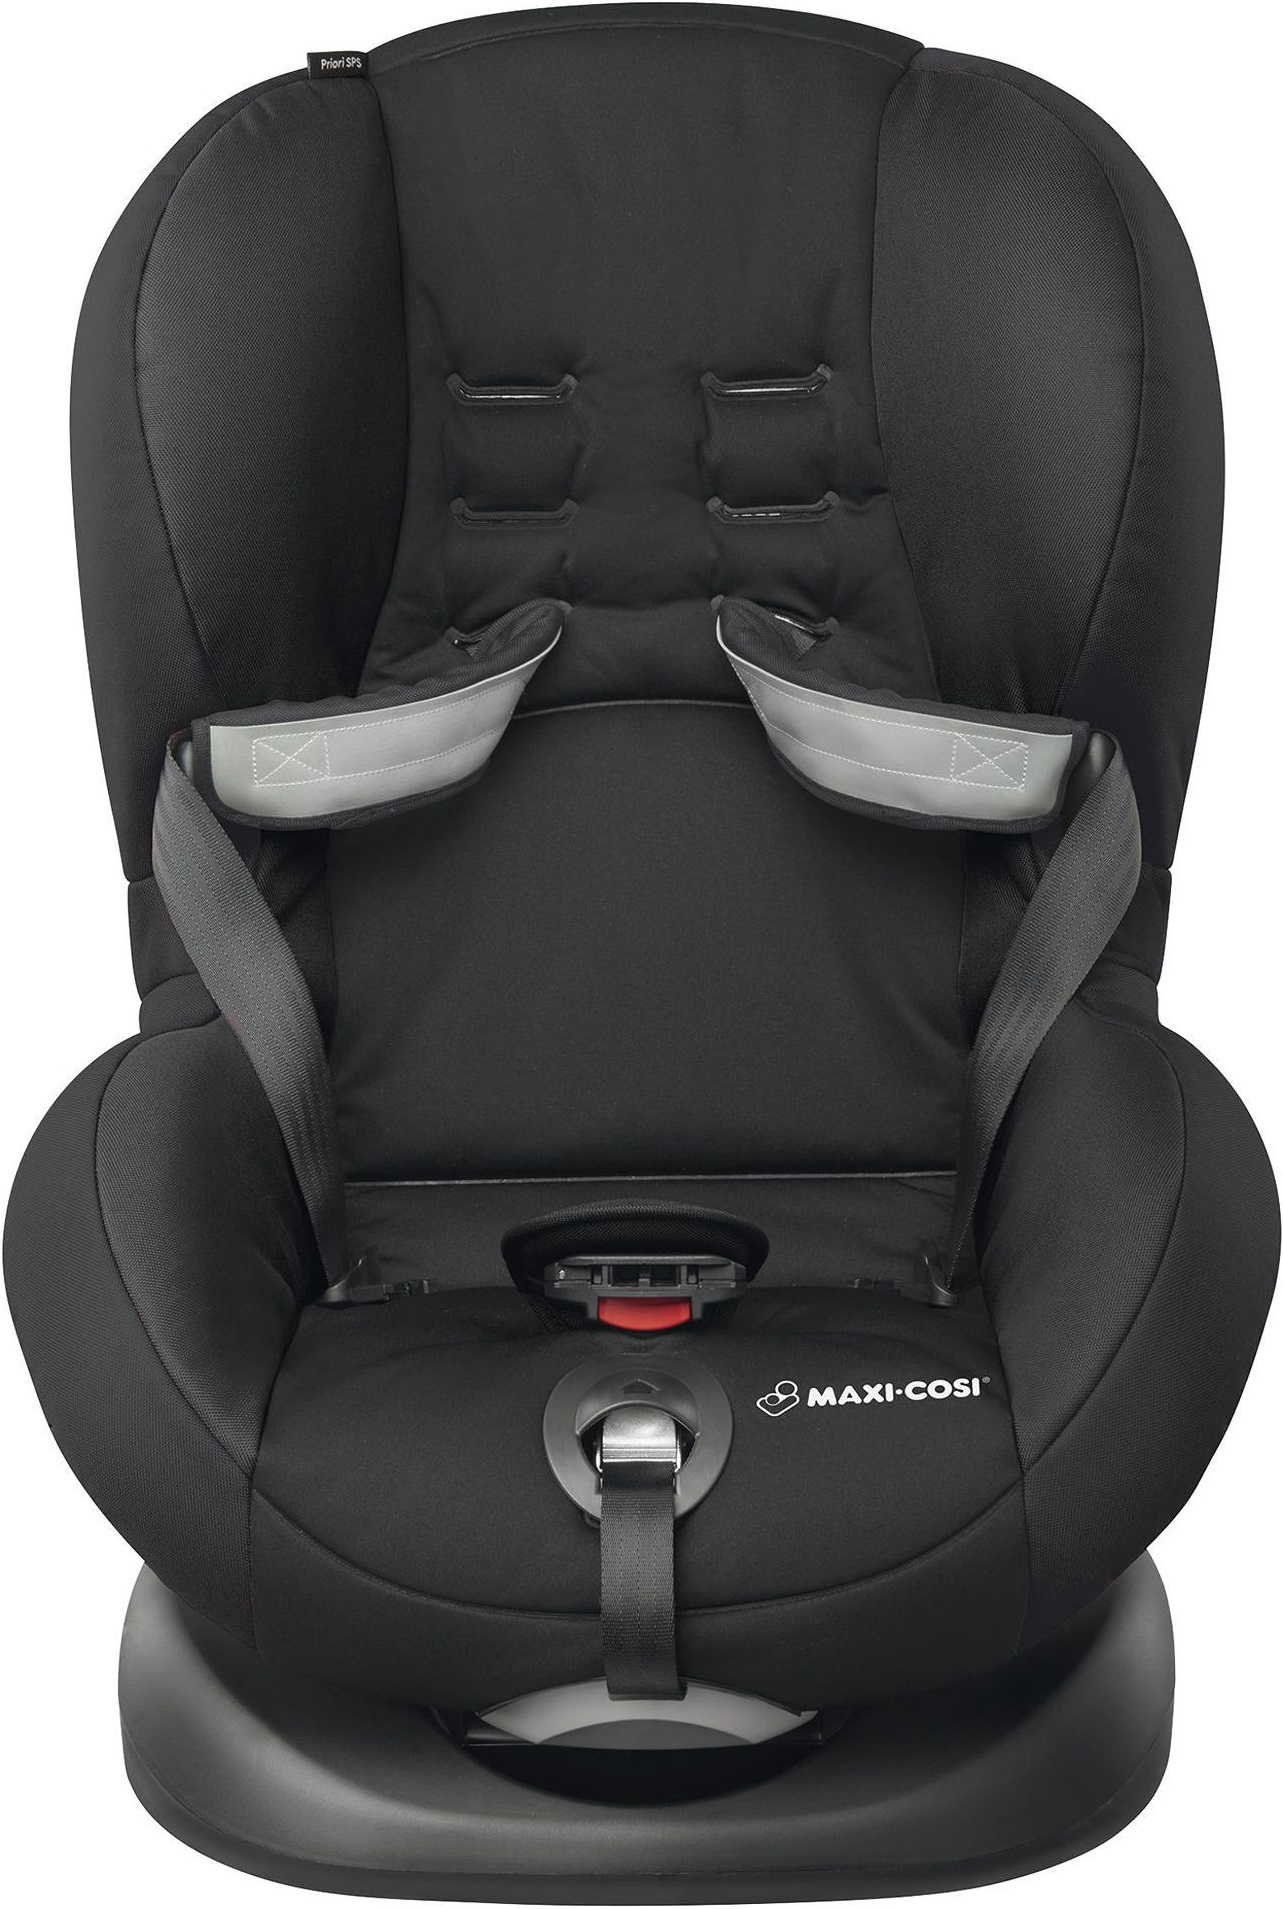 new maxi cosi priori sps side protection system group 1 car seat slate black. Black Bedroom Furniture Sets. Home Design Ideas